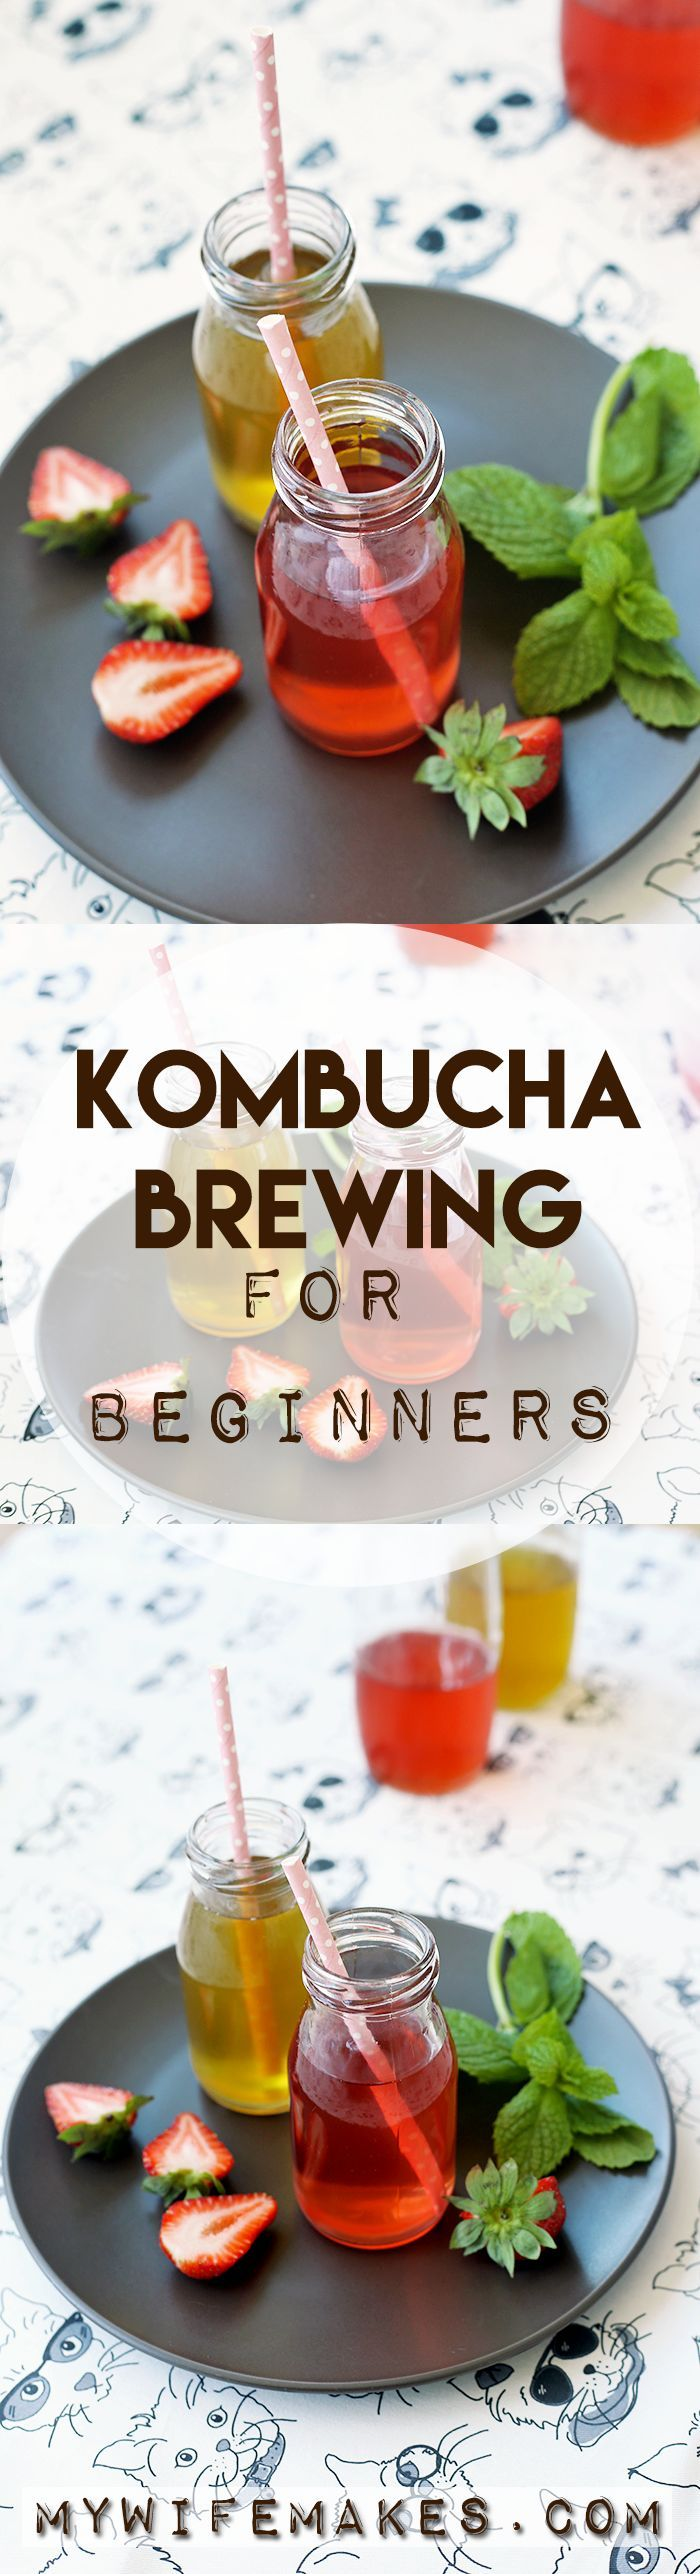 Kombucha Brewing for Beginners ~ learn how to make this delicious, healthy drink in your own home for 1/10th of the price | MyWifeMakes.com